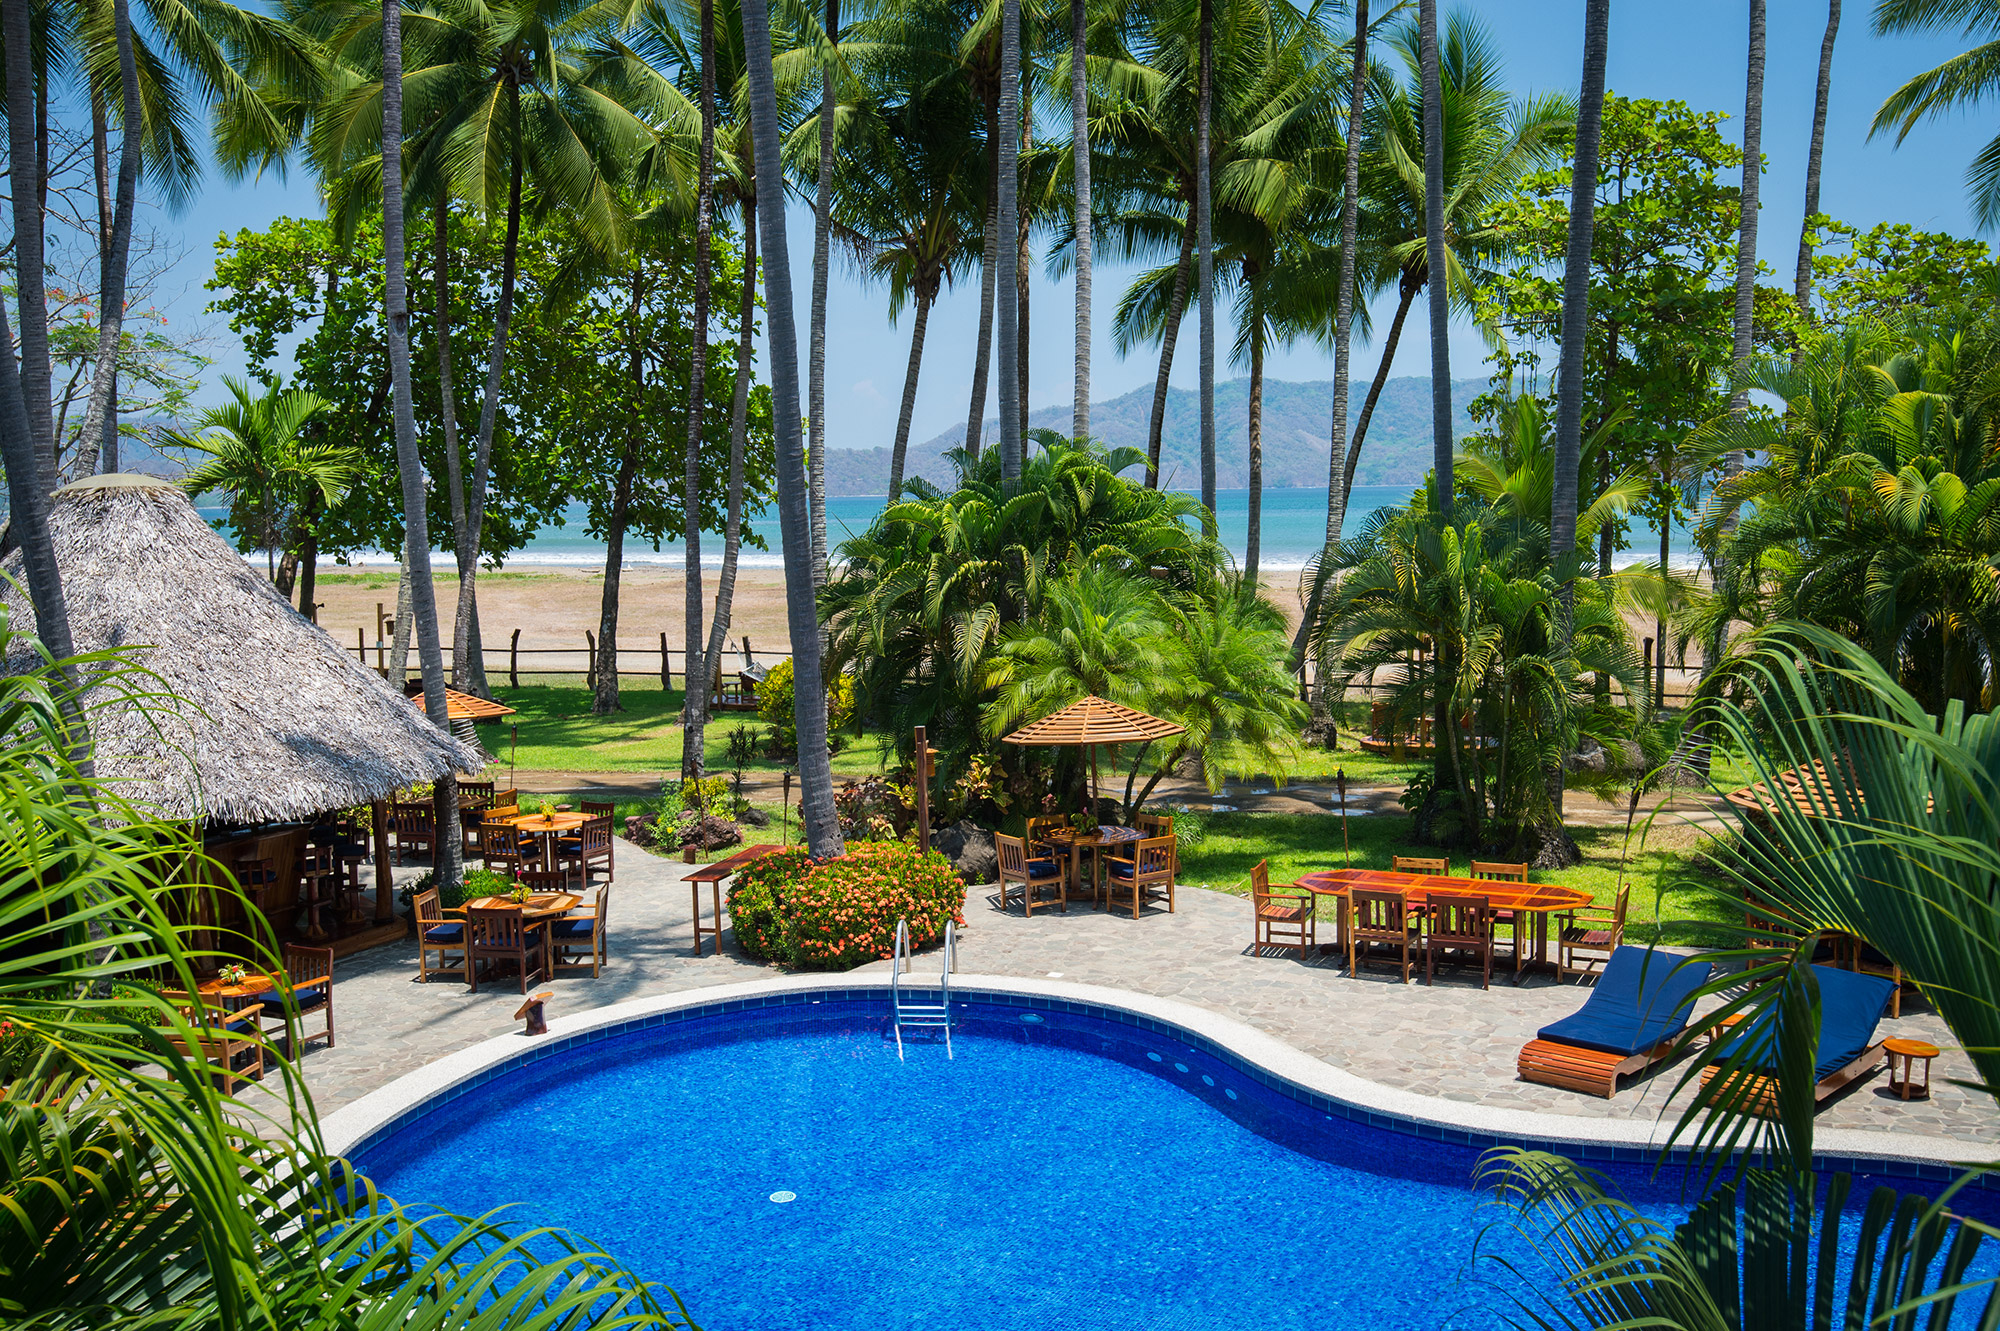 pool-beach-tambor-tropical-7664